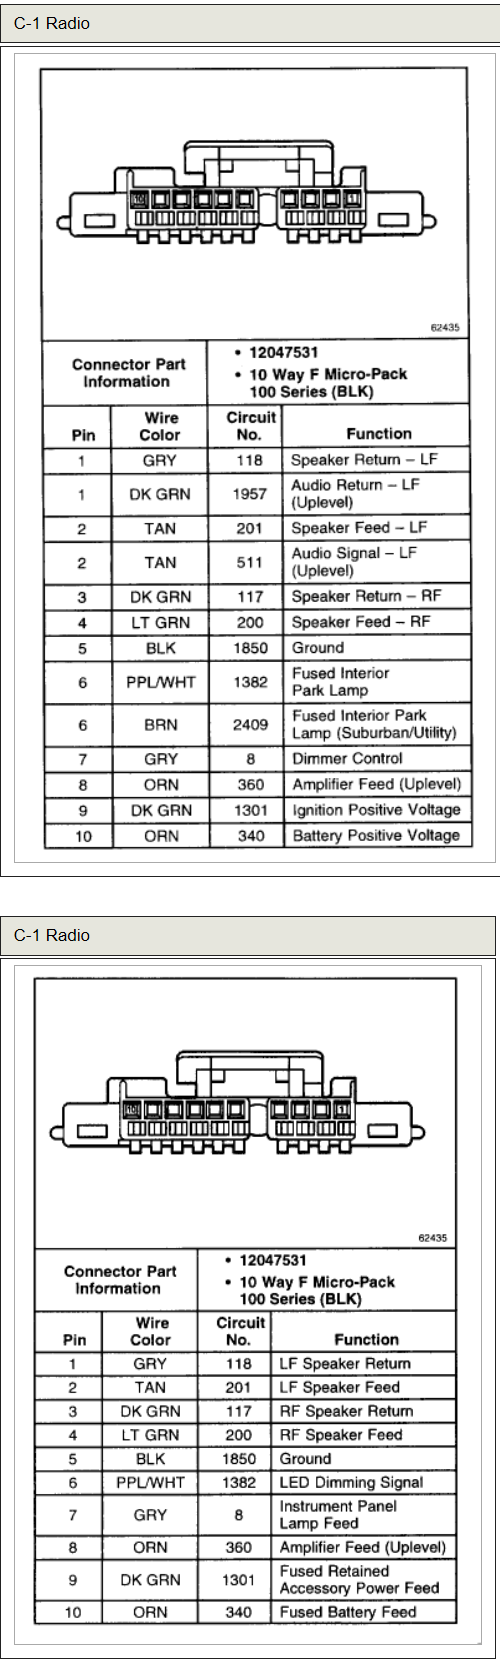 Chevrolet Car Radio Stereo Audio Wiring Diagram Autoradio Connector Power Plugs Colors Wire Installation Schematic Schema Esquema De Conexiones Anschlusskammern Konektor